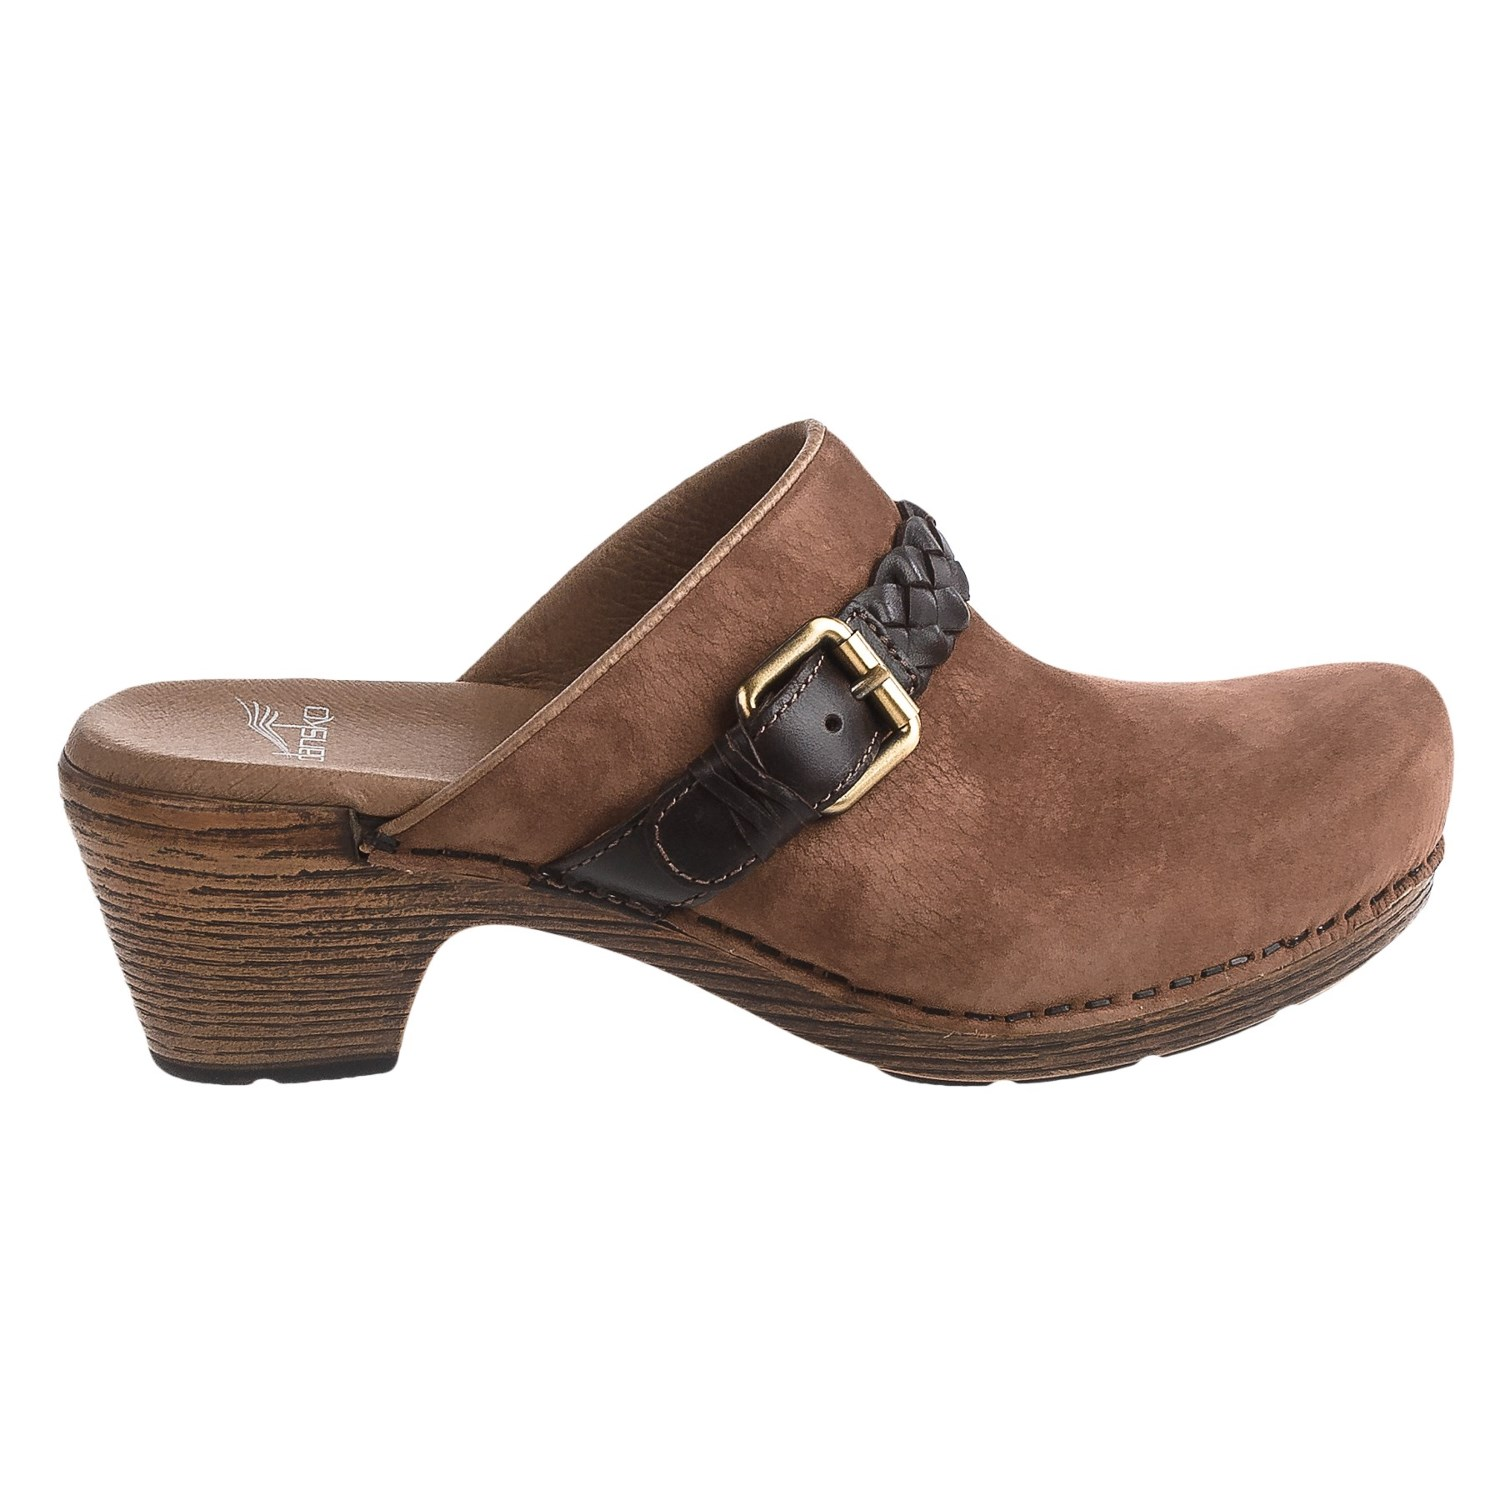 Dansko Melanie Strap And Buckle Clogs For Women Save 49